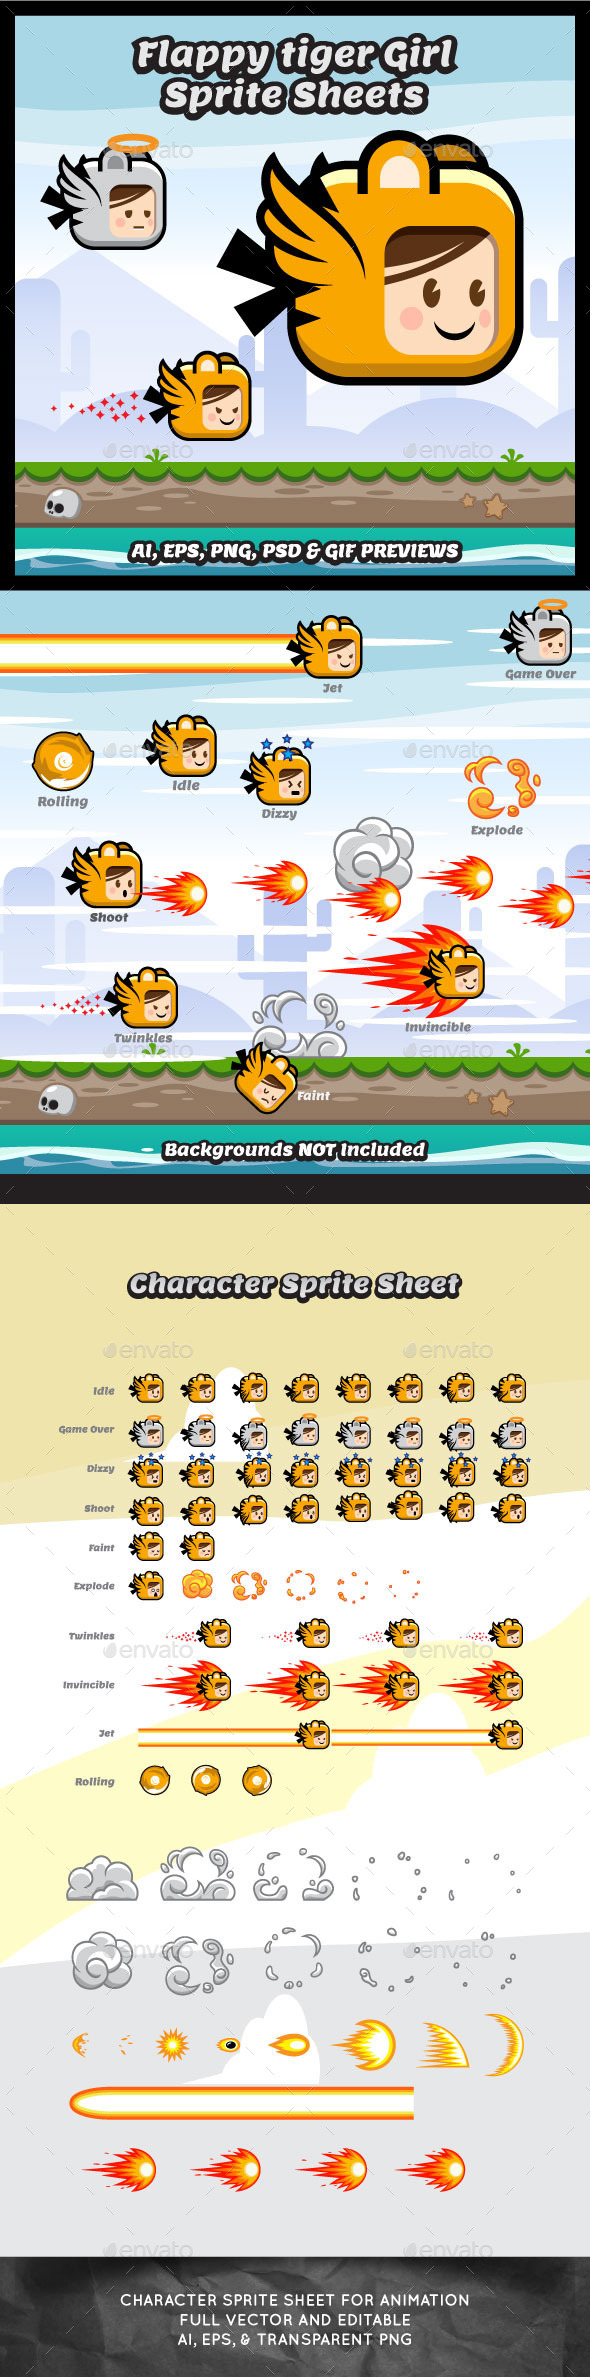 Flappy Tiger Girl Game Character Sprite Sheets - Sprites Game Assets